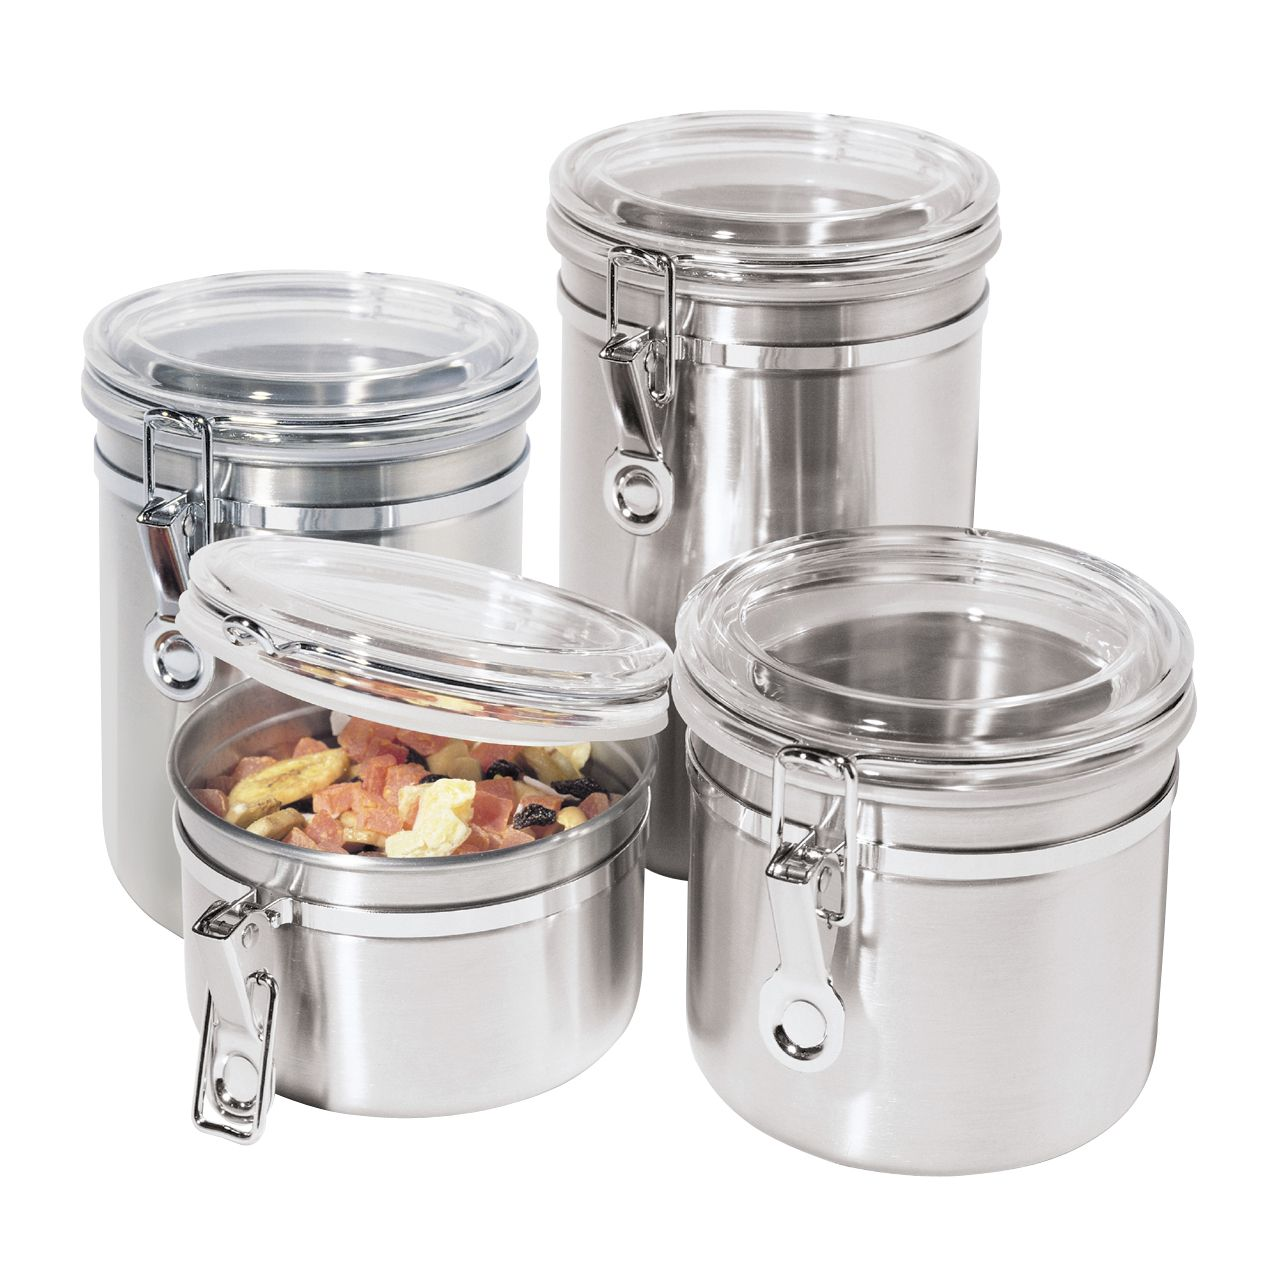 Gold Coast Kitchenware Oggi 4 Pc 18 8 Stainless Steel Canister Set Shop Your